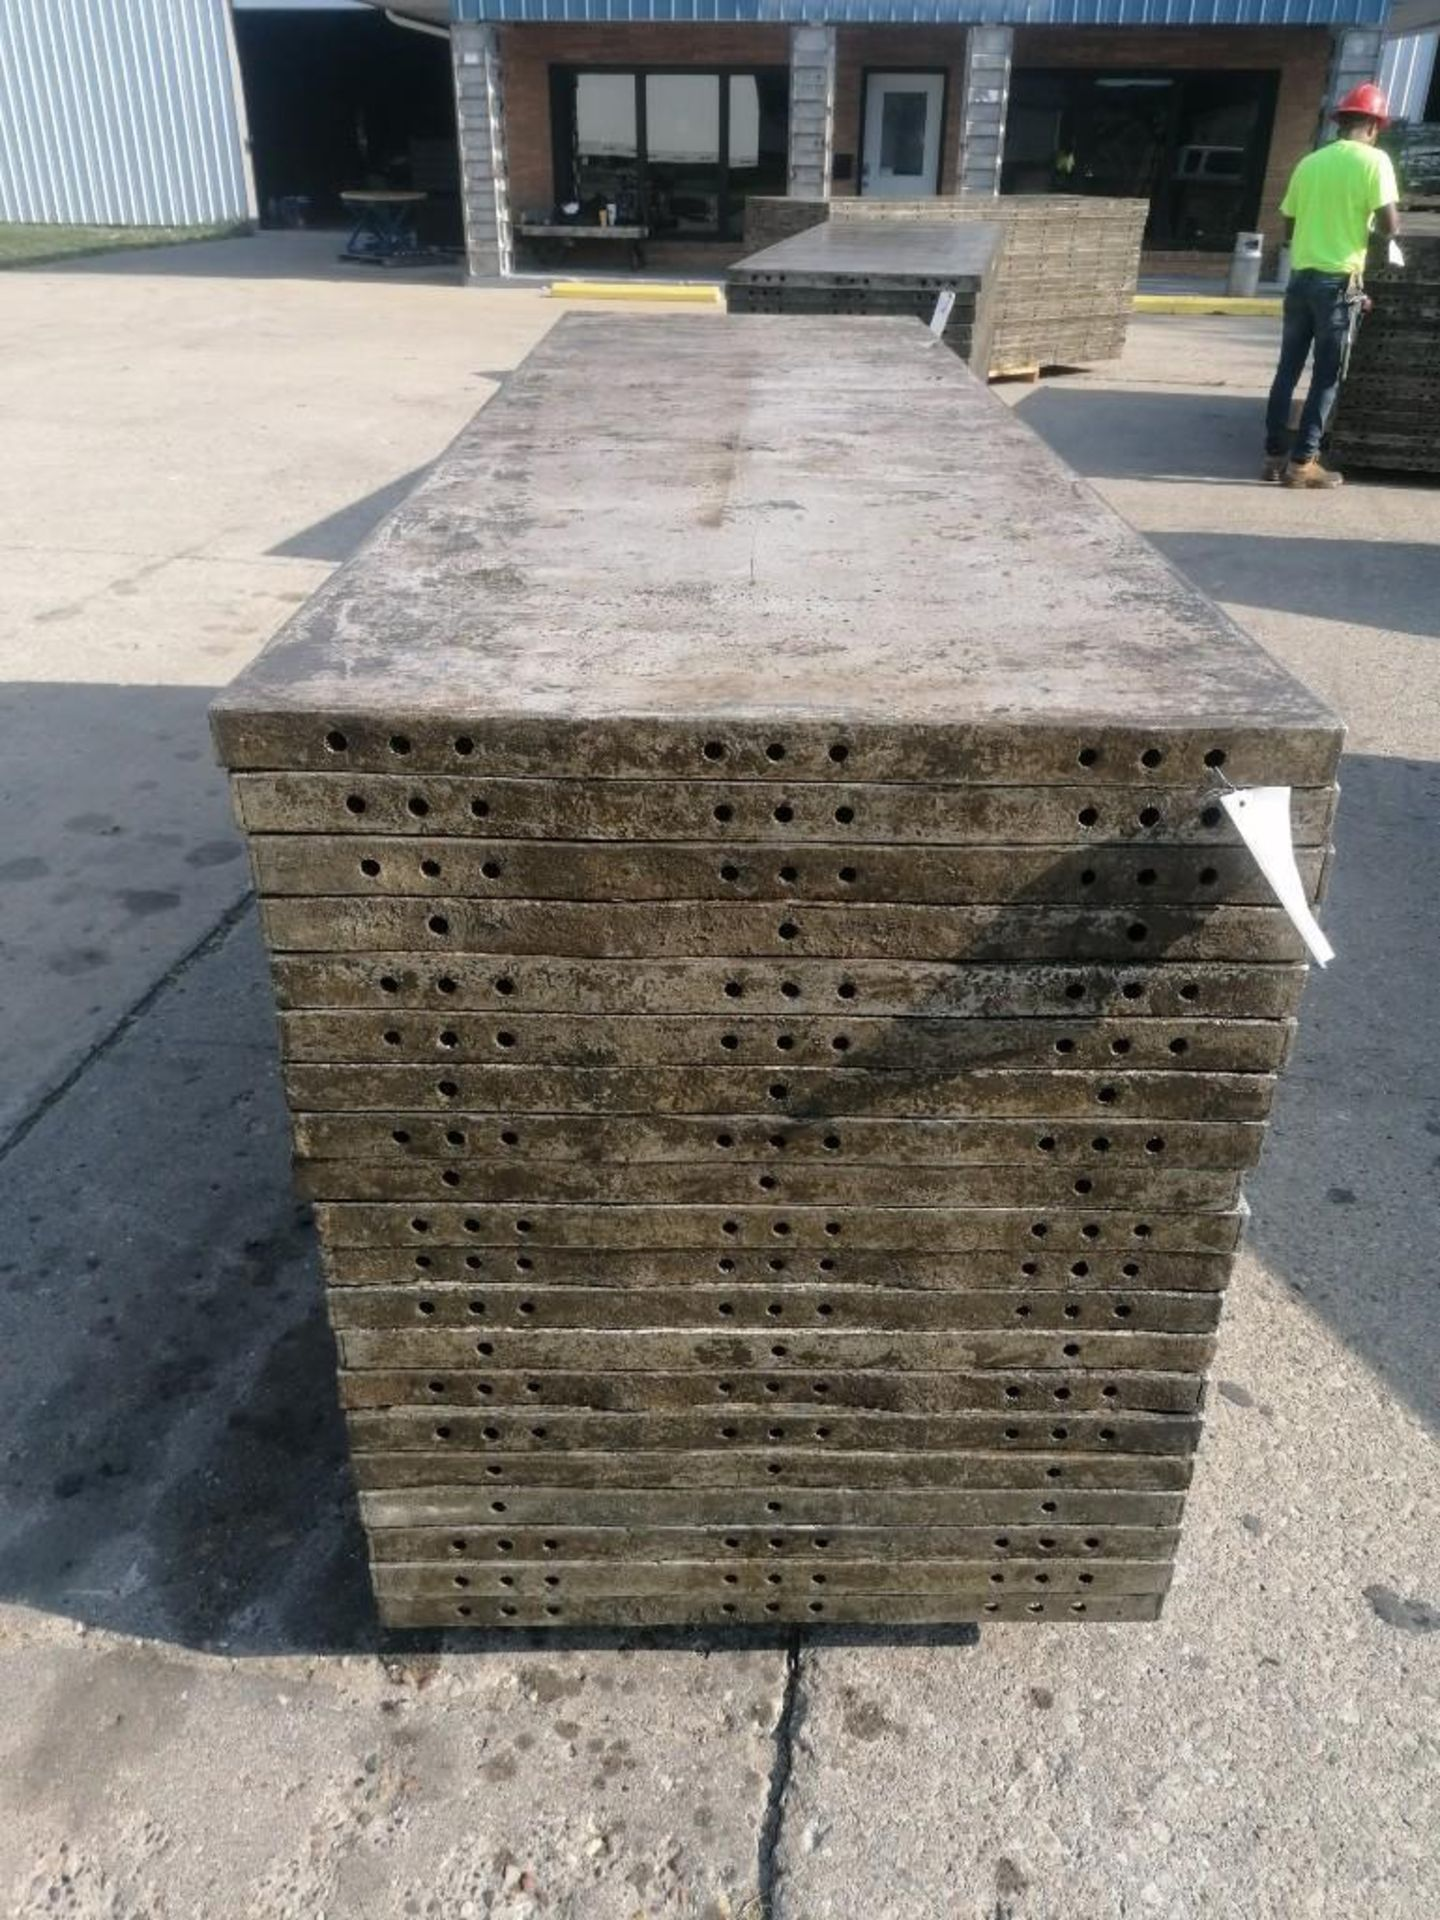 Lot 123 - (20) 3' x 10' Wall-Ties Aluminum Concrete Forms, Smooth 6-12 Hole Pattern. Located at 301 E Henry